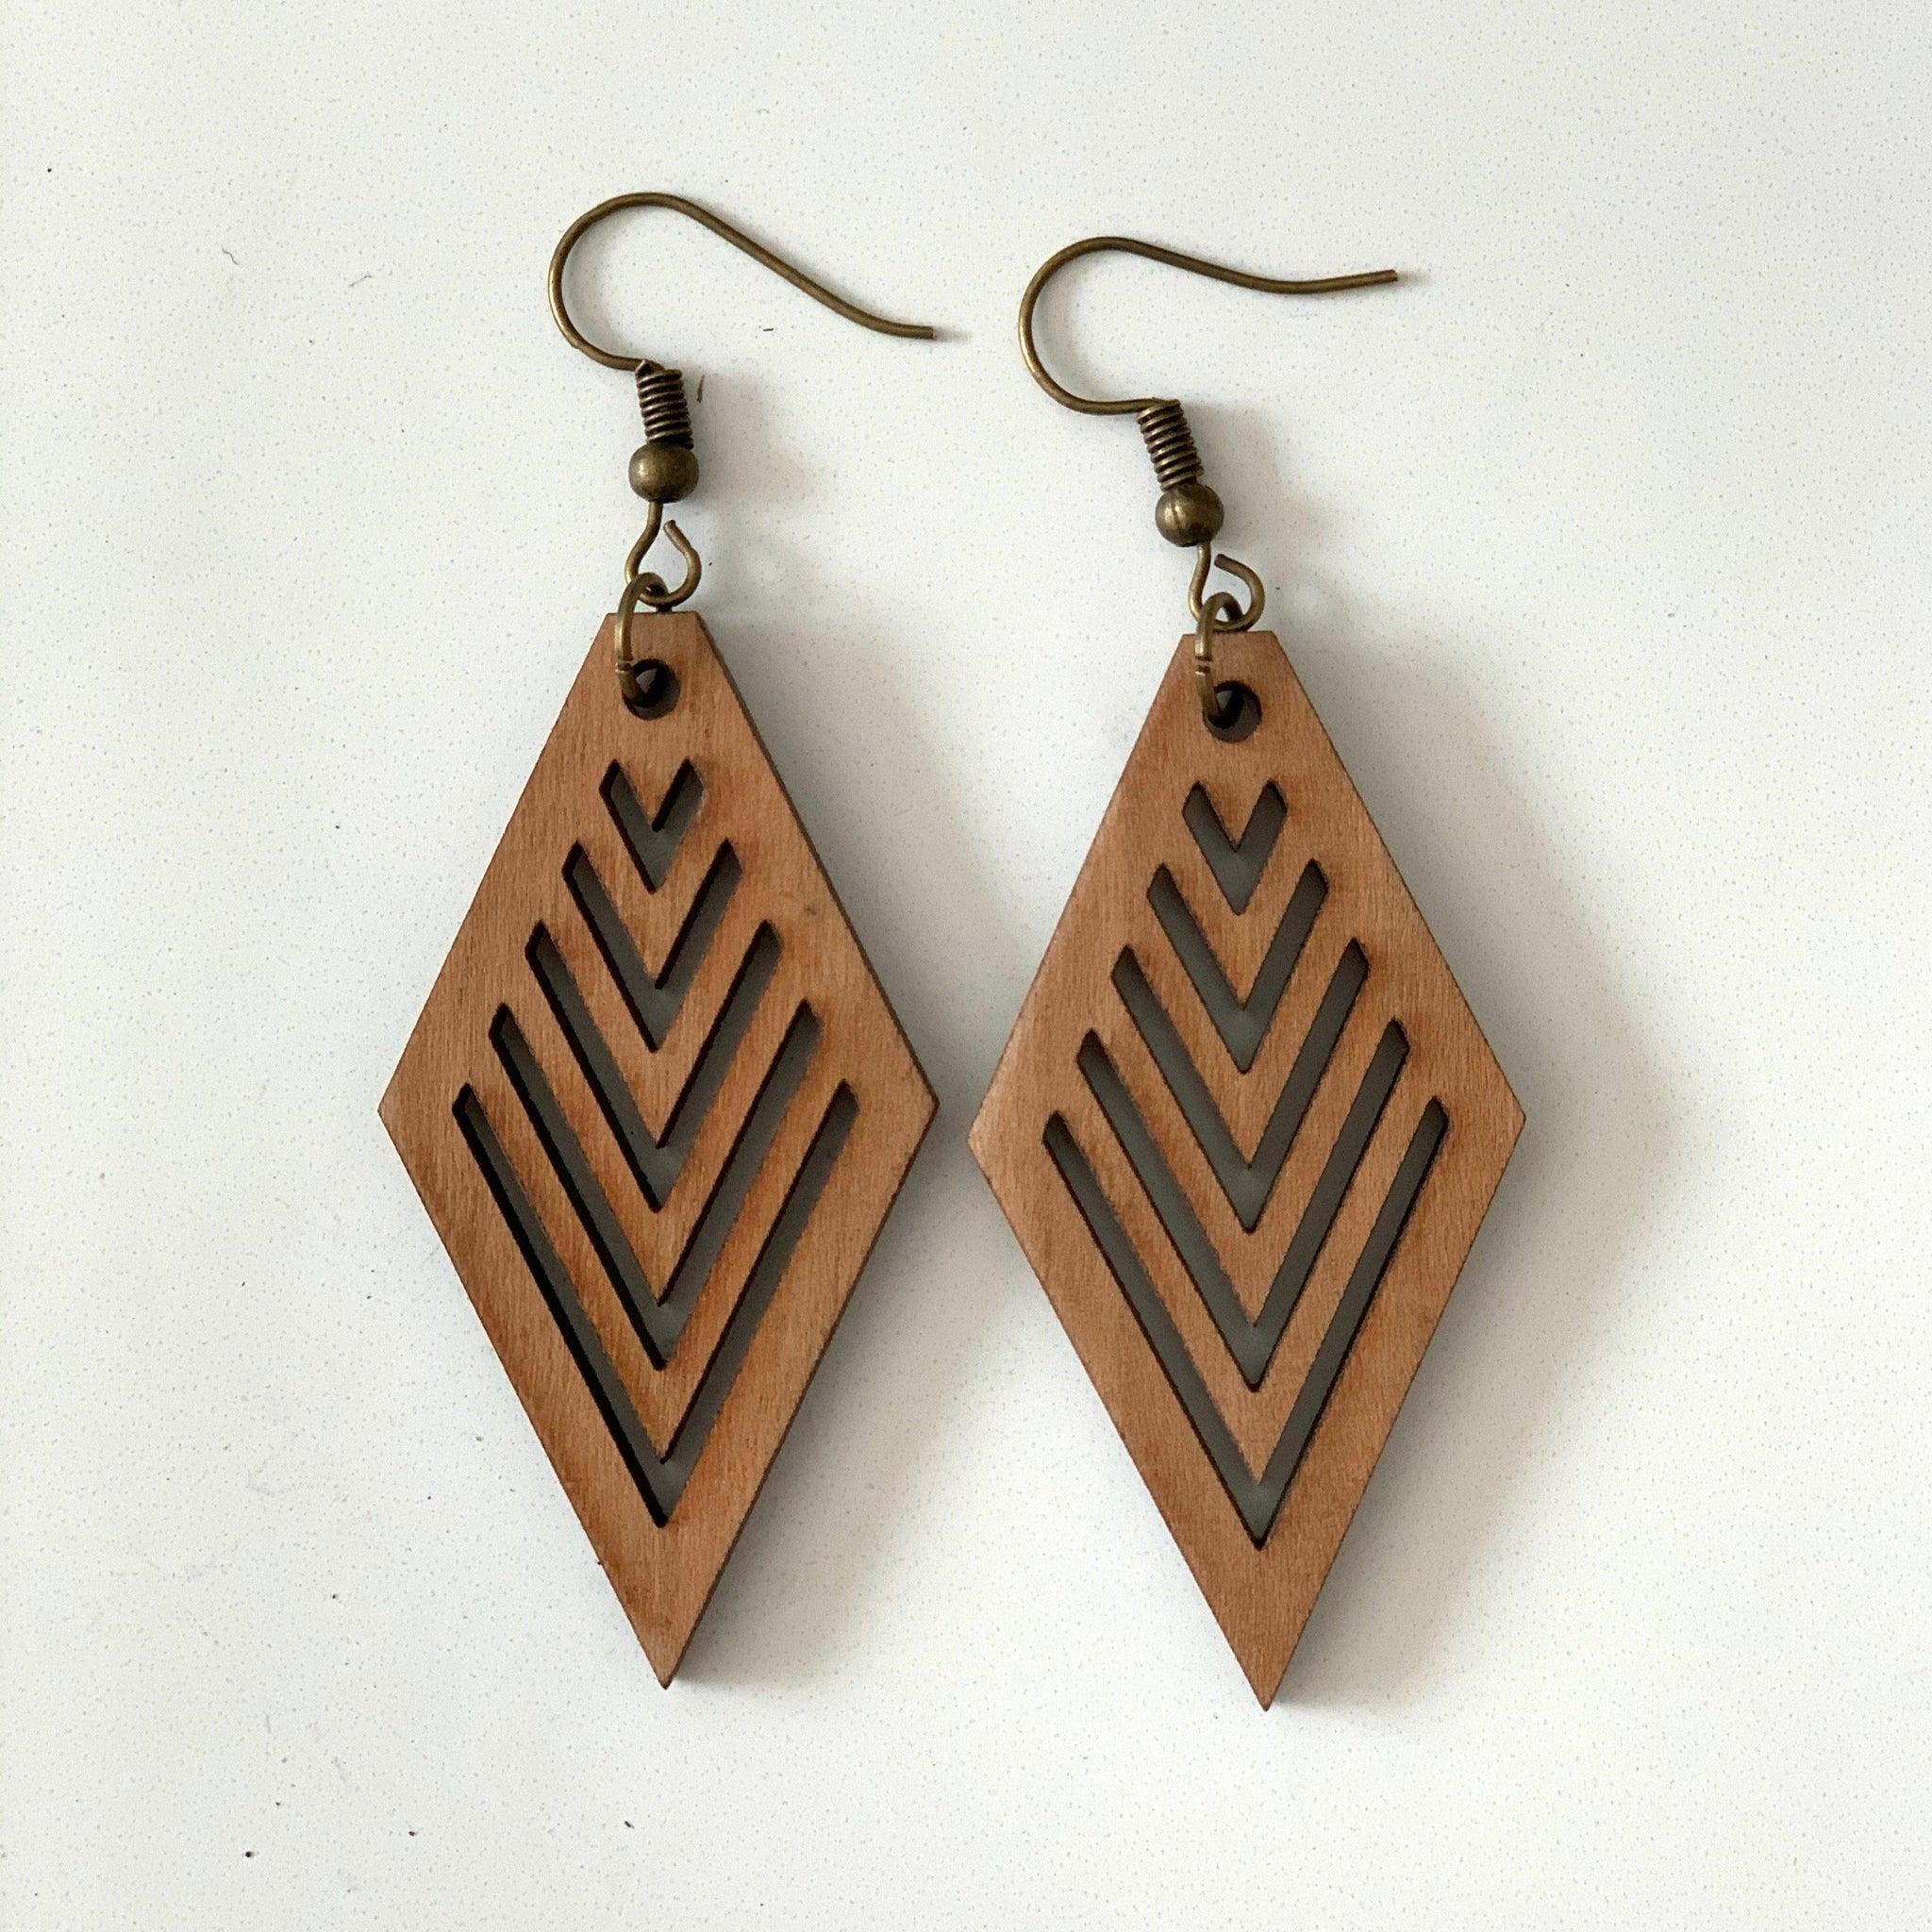 Diamond Earring with V Cuts in Wood - Orange